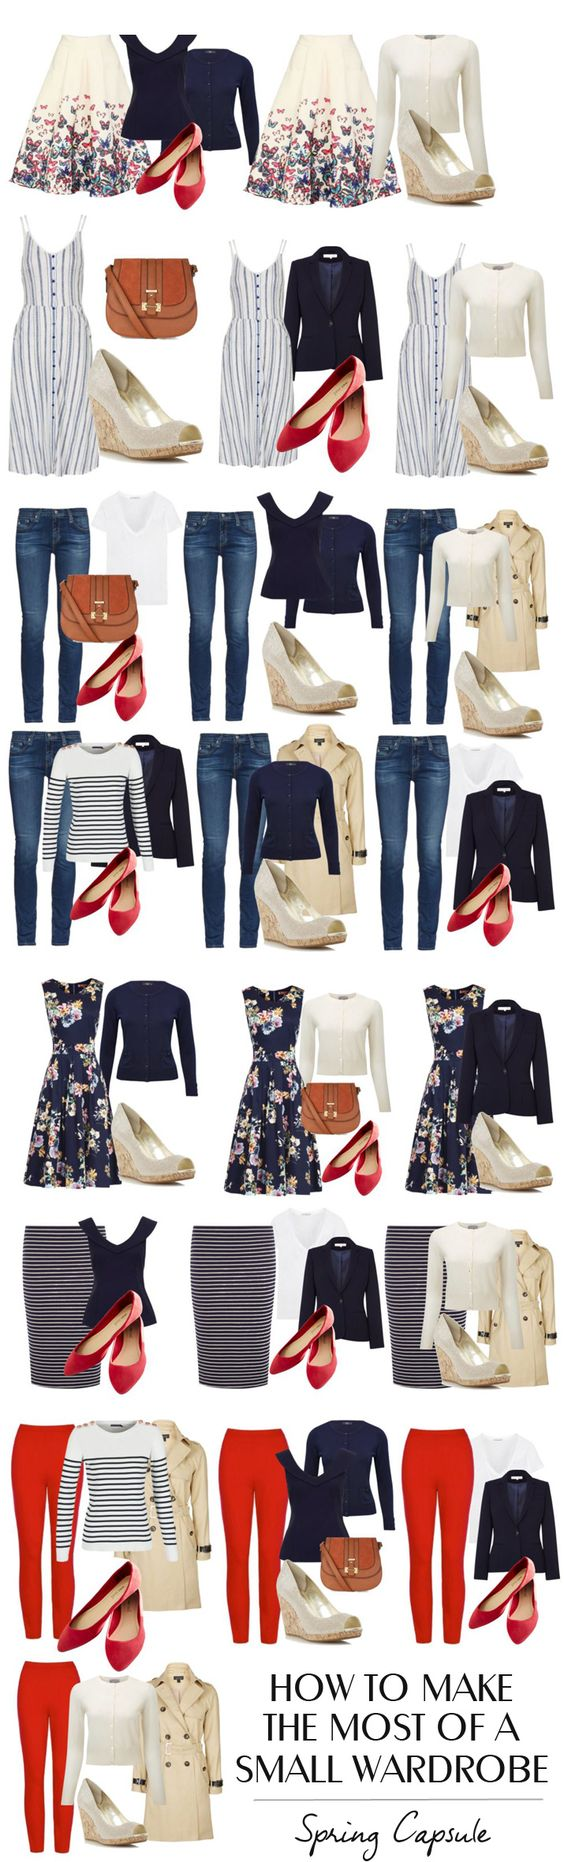 How to make the most of a very small wardrobe: spring capsule wardrobe: